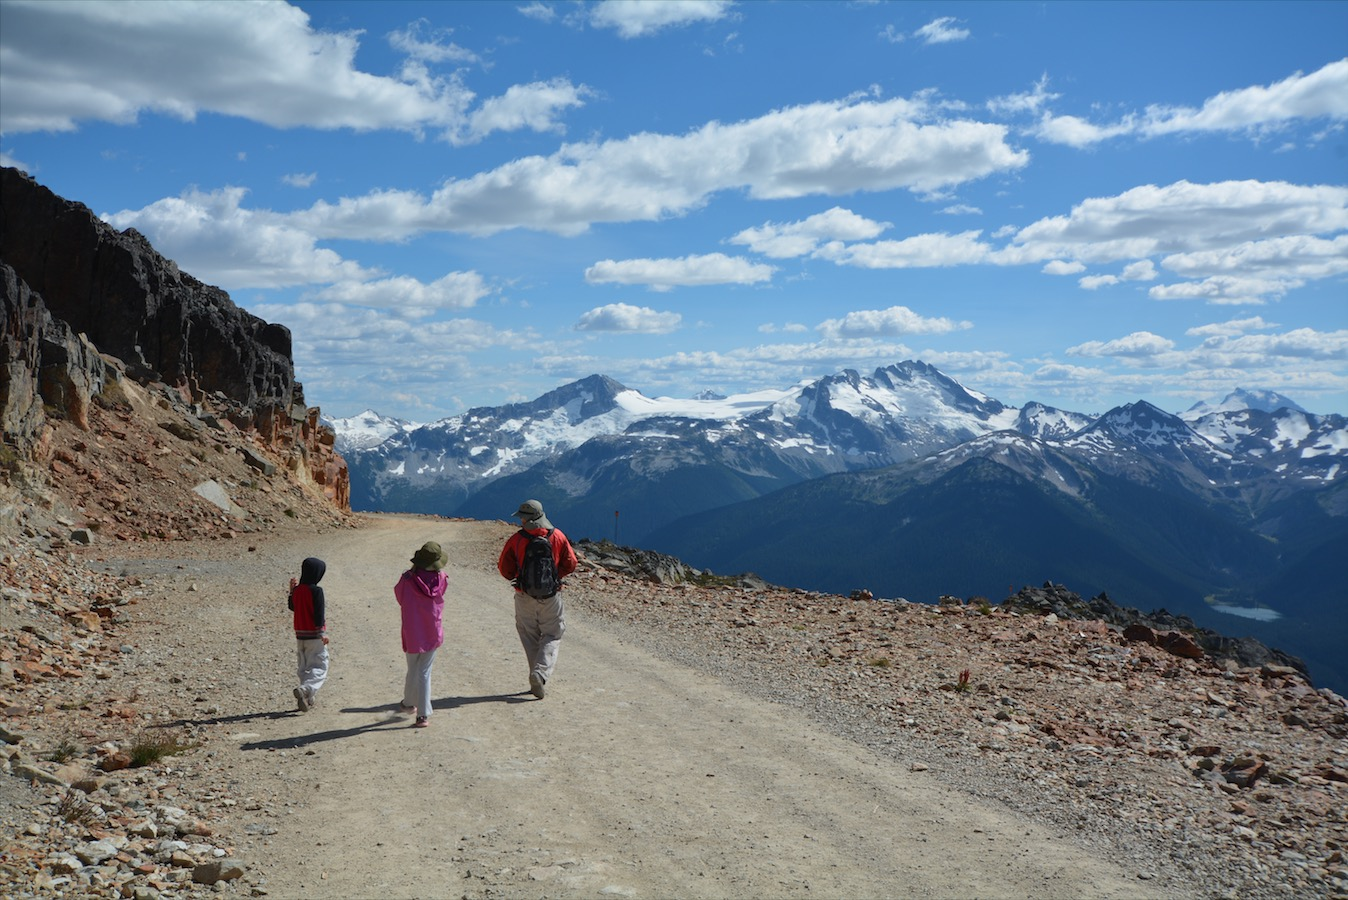 A family walks in North Cascades National Park. Glacier-topped Mount Shuksan is visible in the distance.